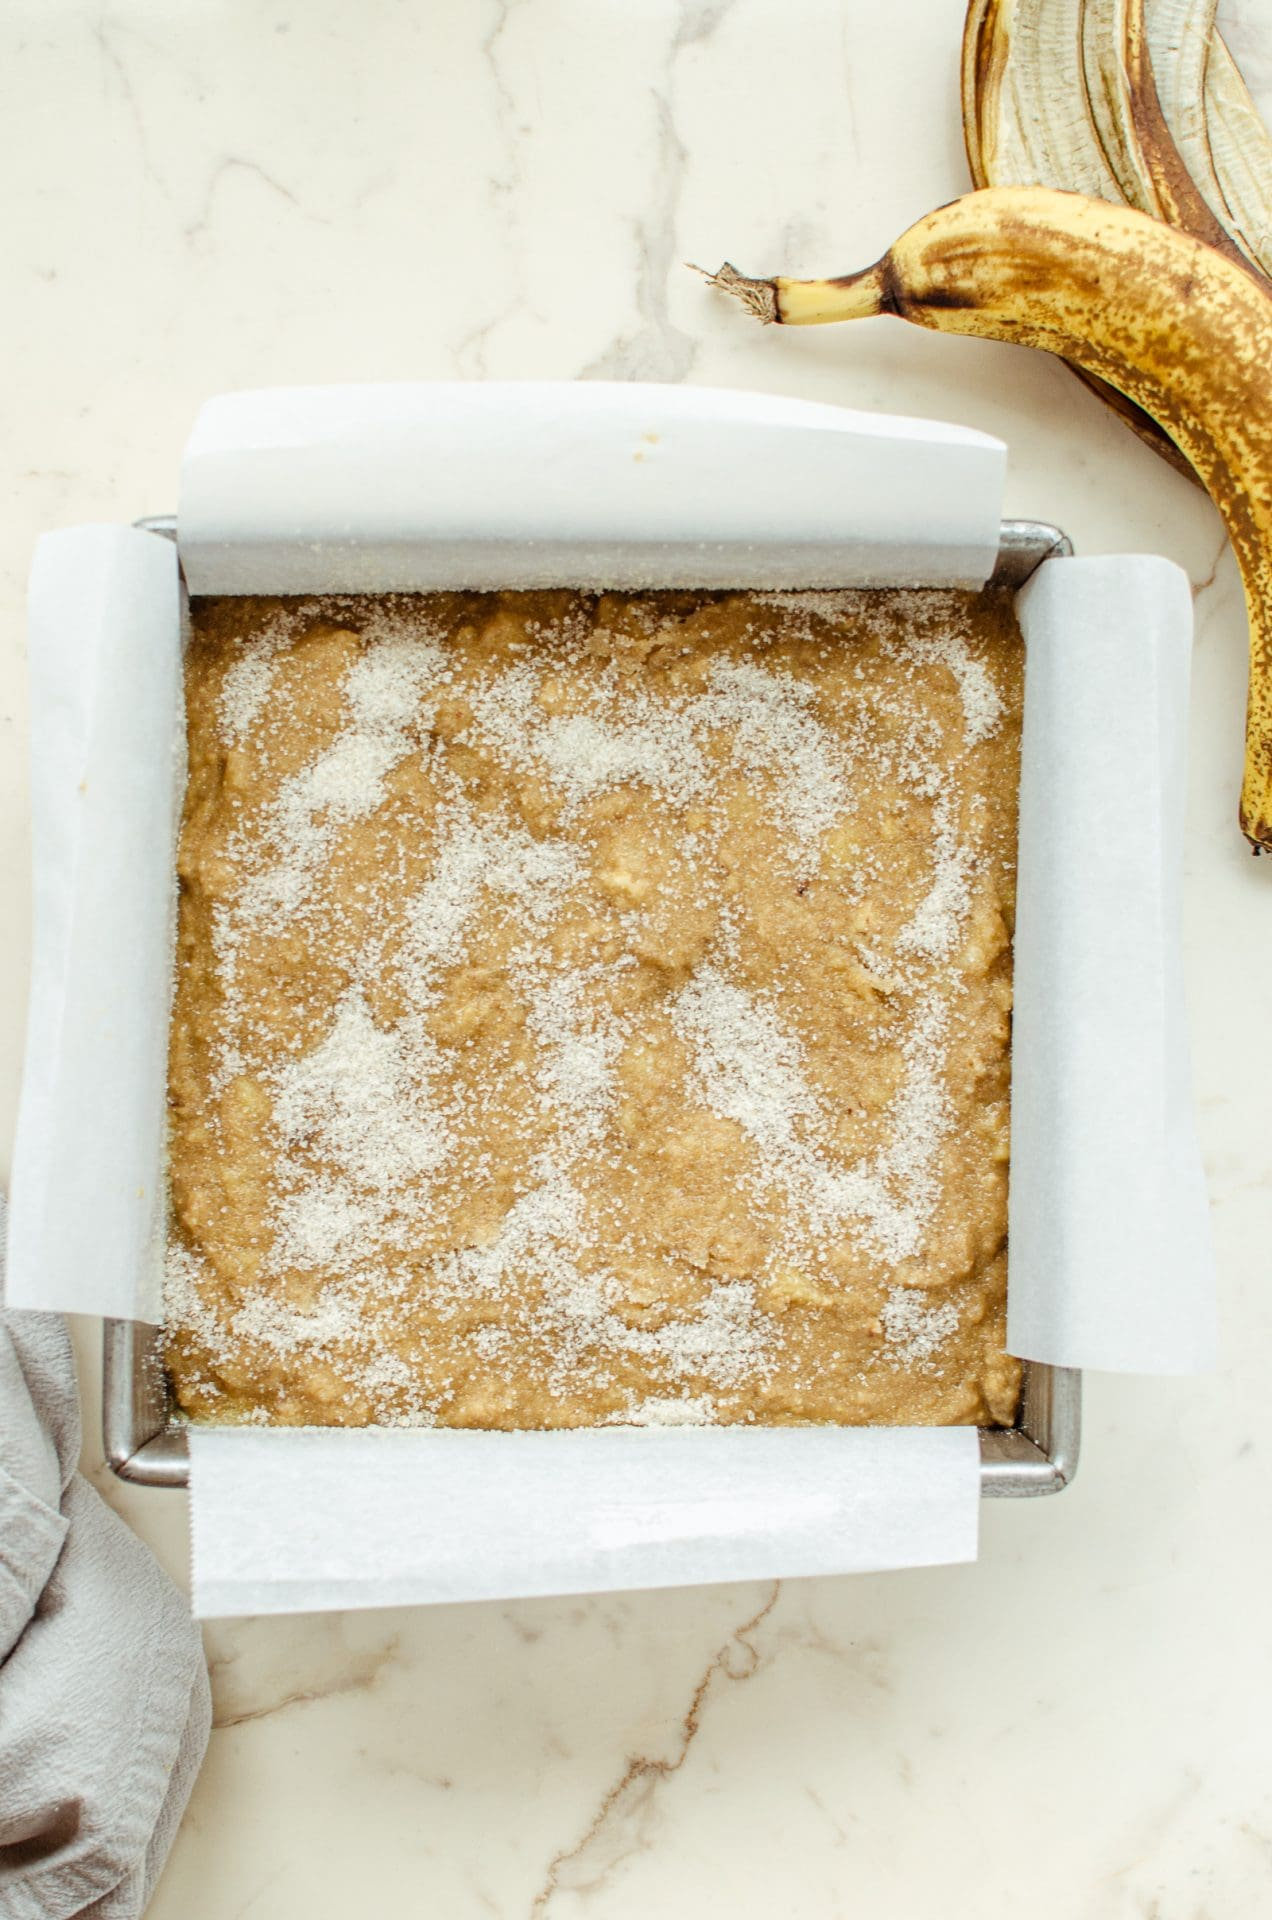 Unbaked banana bread batter in a square cake pan sprinkled with sugar on top.